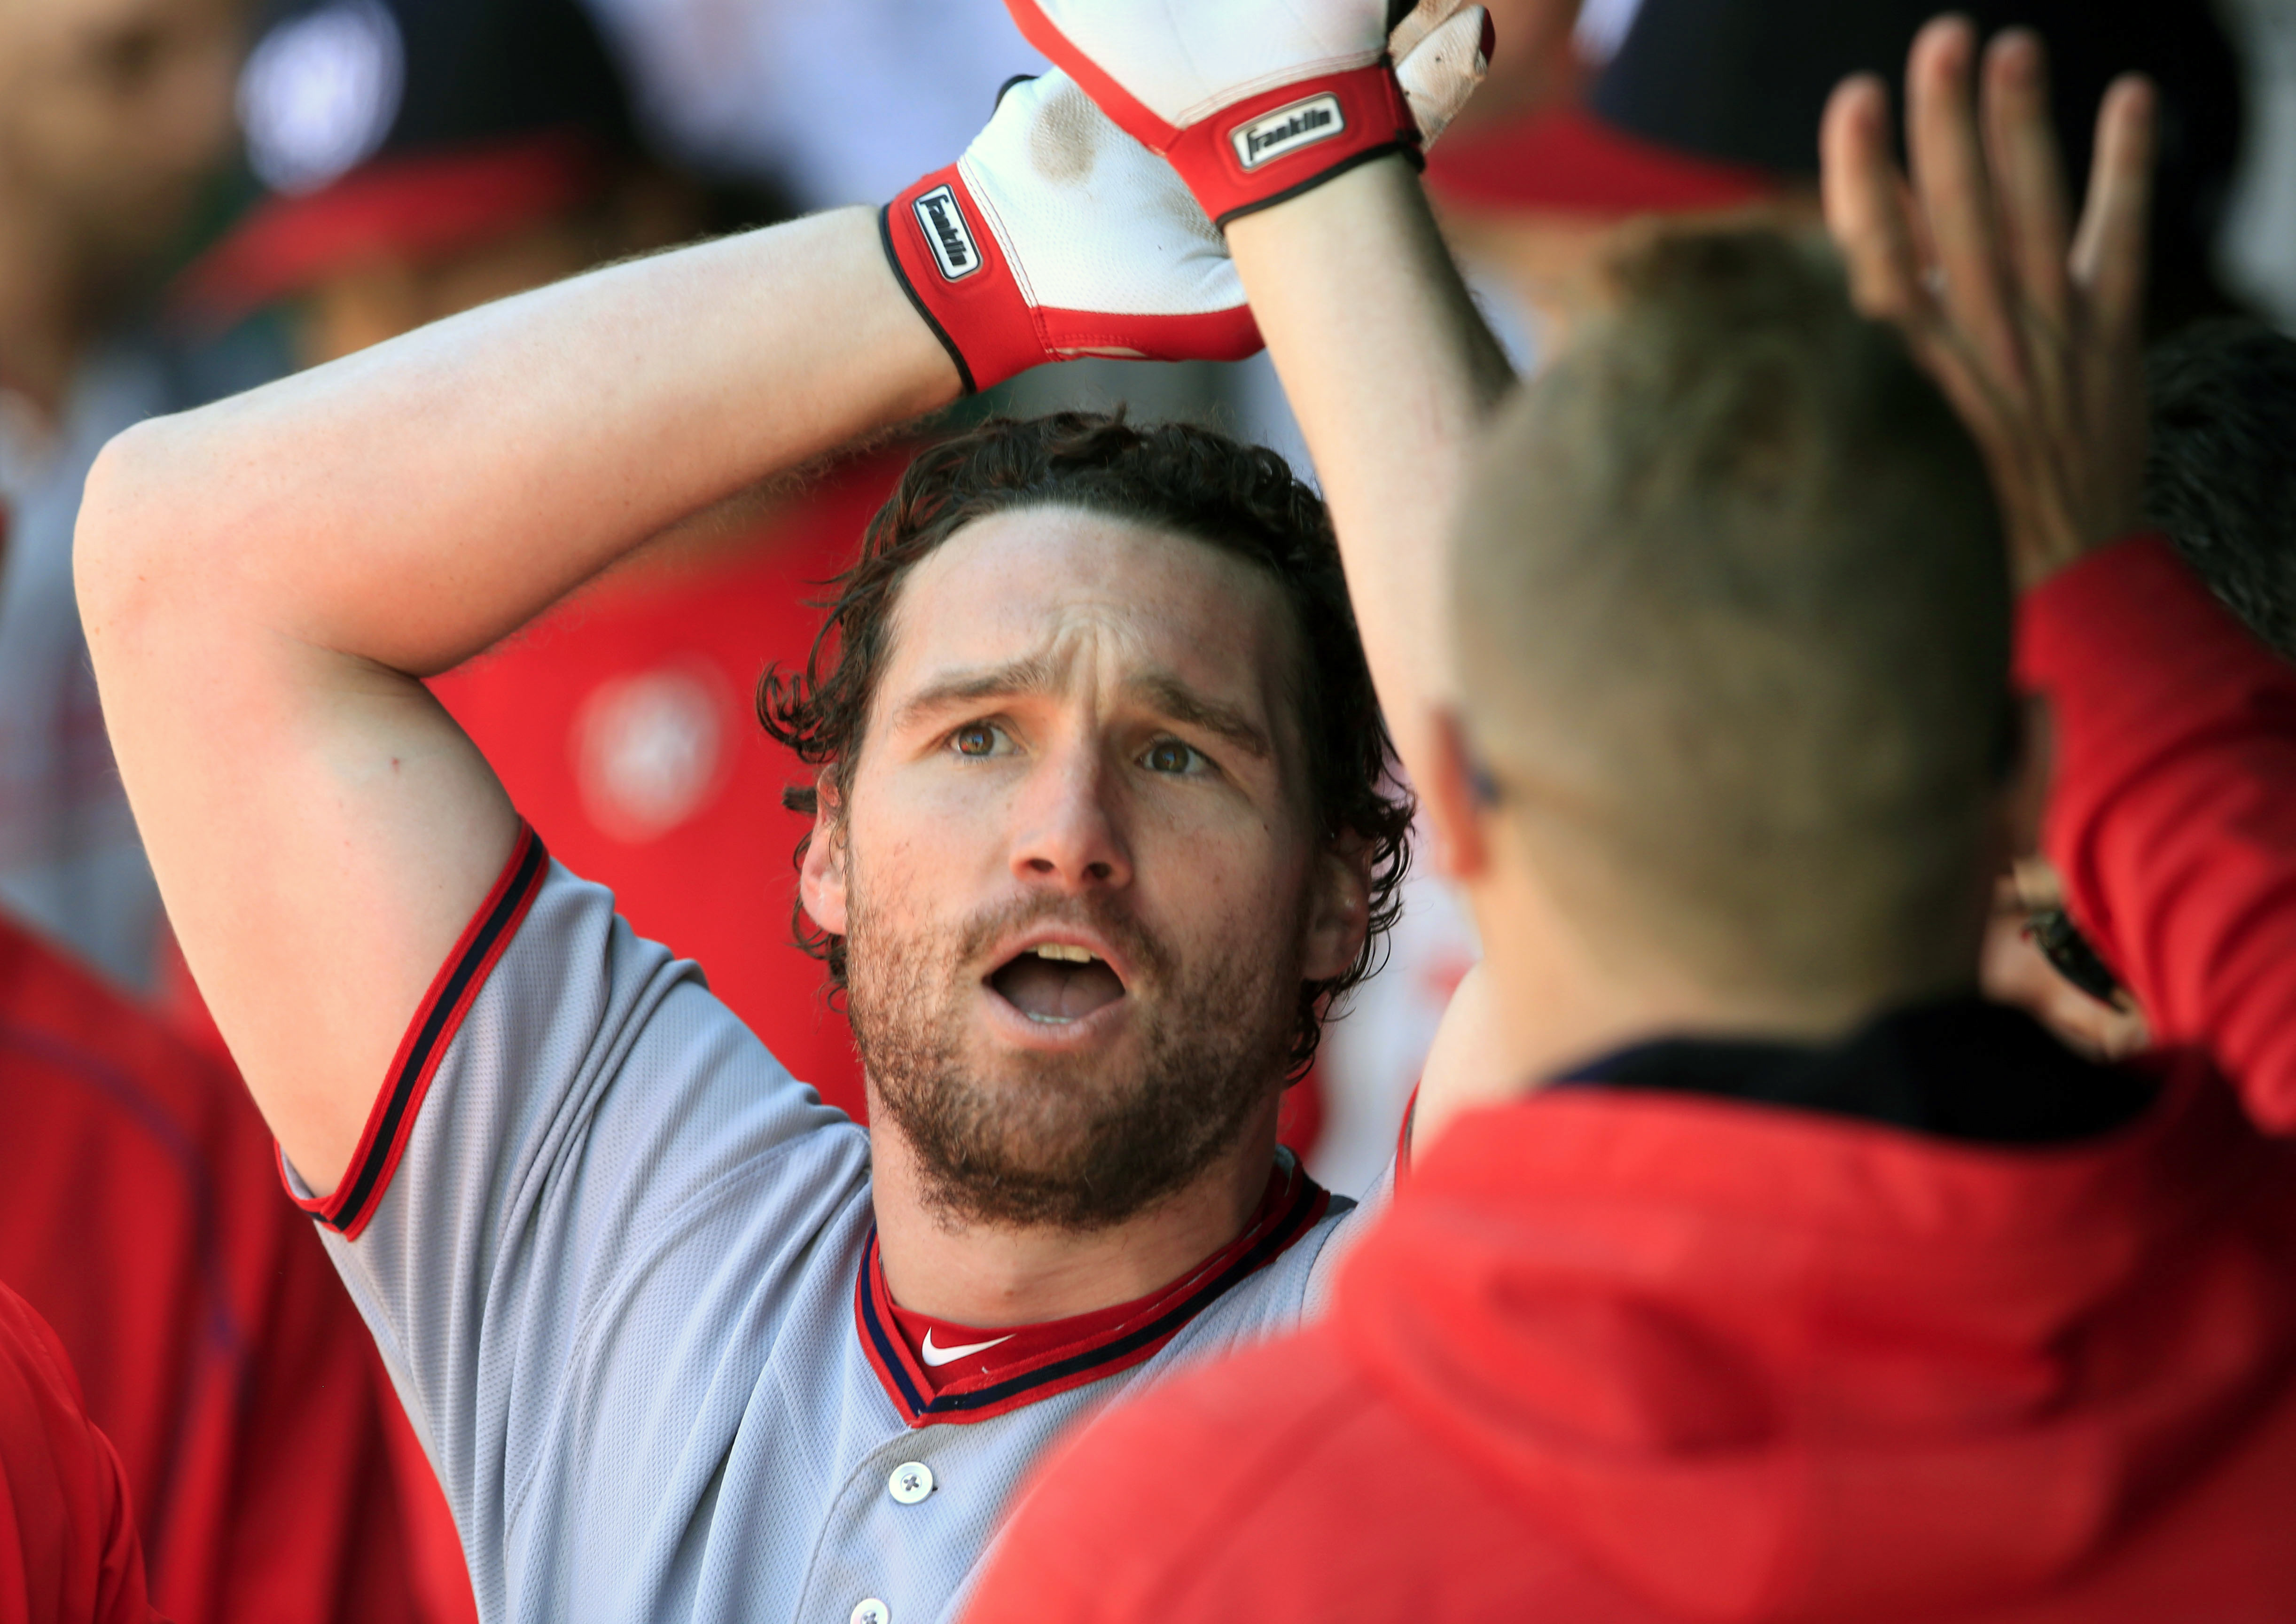 Washington Nationals' Daniel Murphy is congratulated by teammates after his solo home run during the fourth inning of a baseball game against the Kansas City Royals at Kauffman Stadium in Kansas City, Mo., Wednesday, May 4, 2016. (AP Photo/Orlin Wagner)